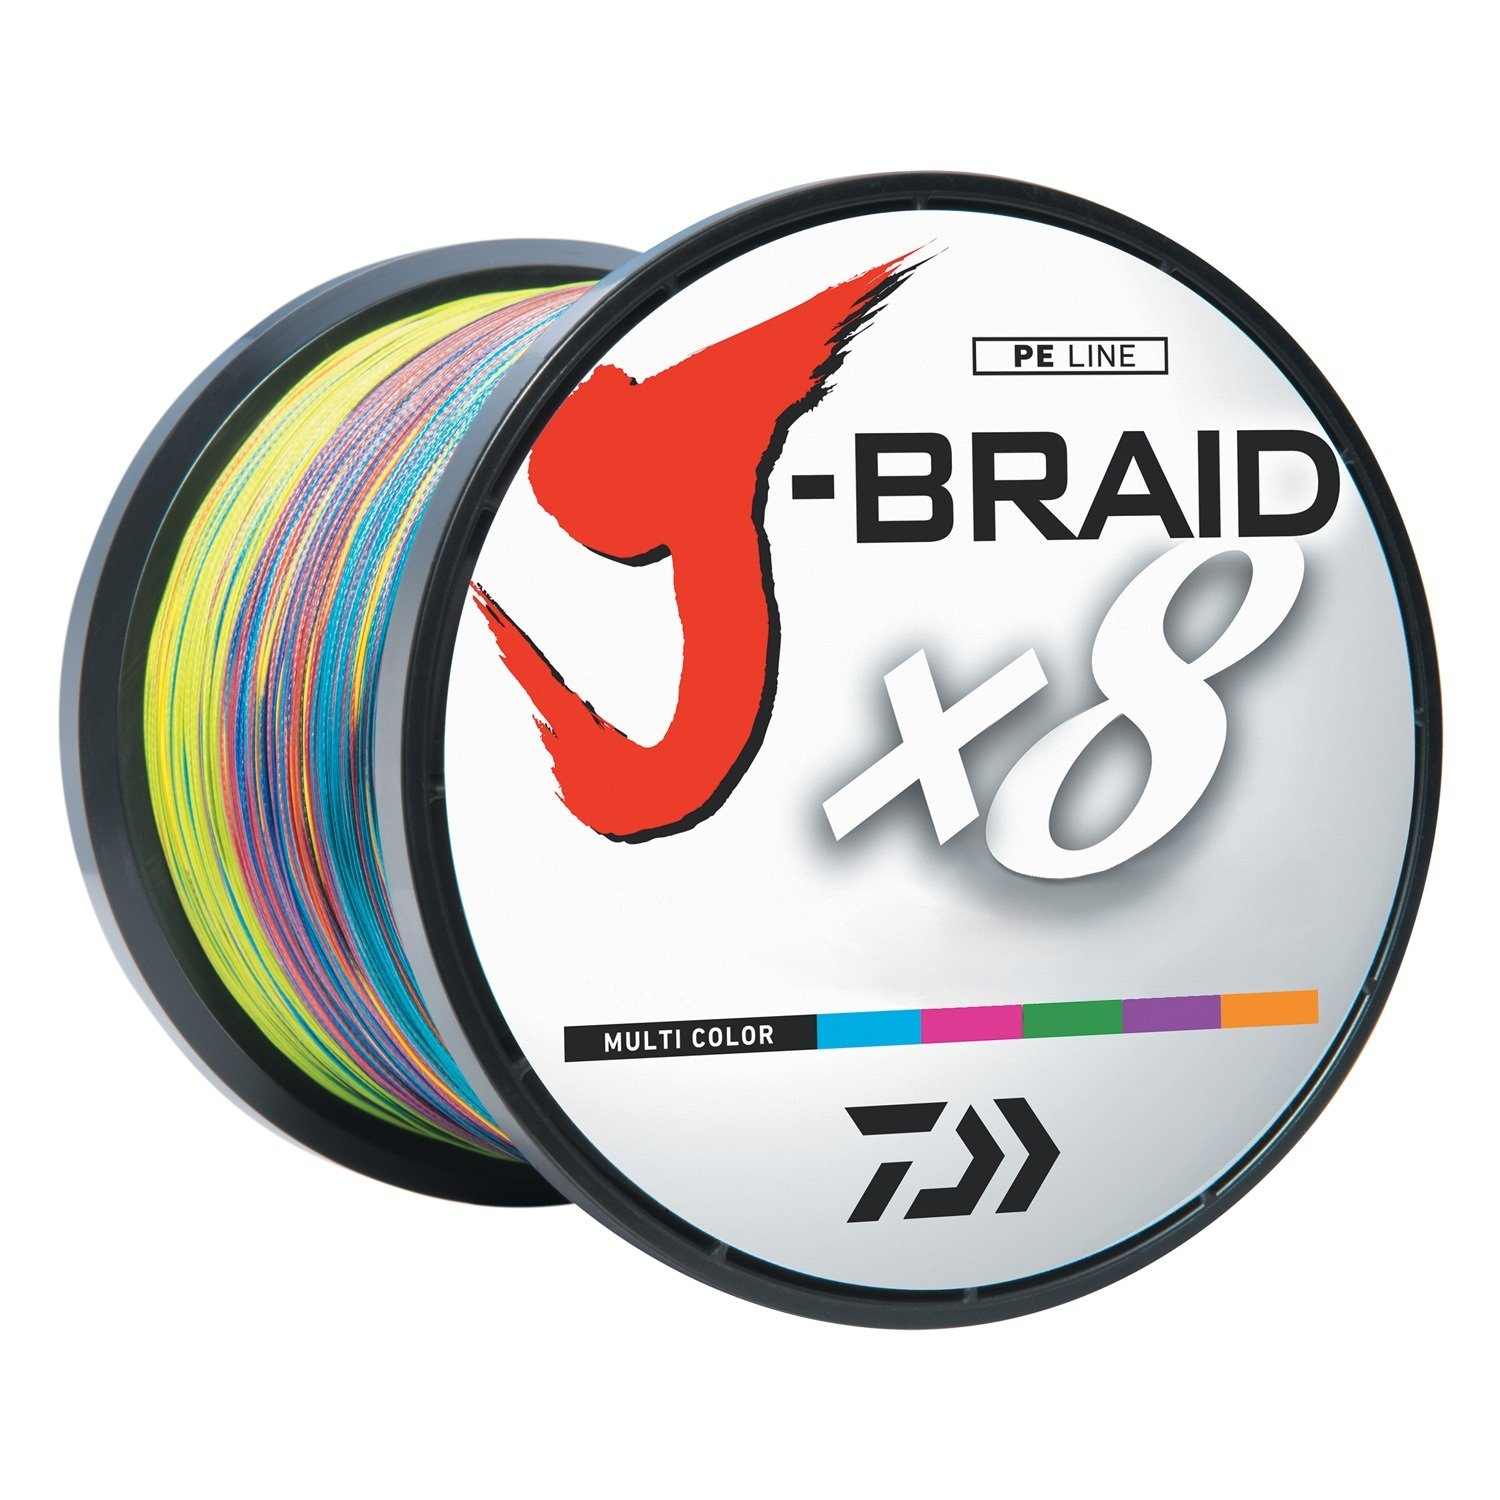 Daiwa J-Braidx8 JB8U150-2500MU 150 lbs Test, Multi-Color, 2500 Meters/2735 Yards by Daiwa